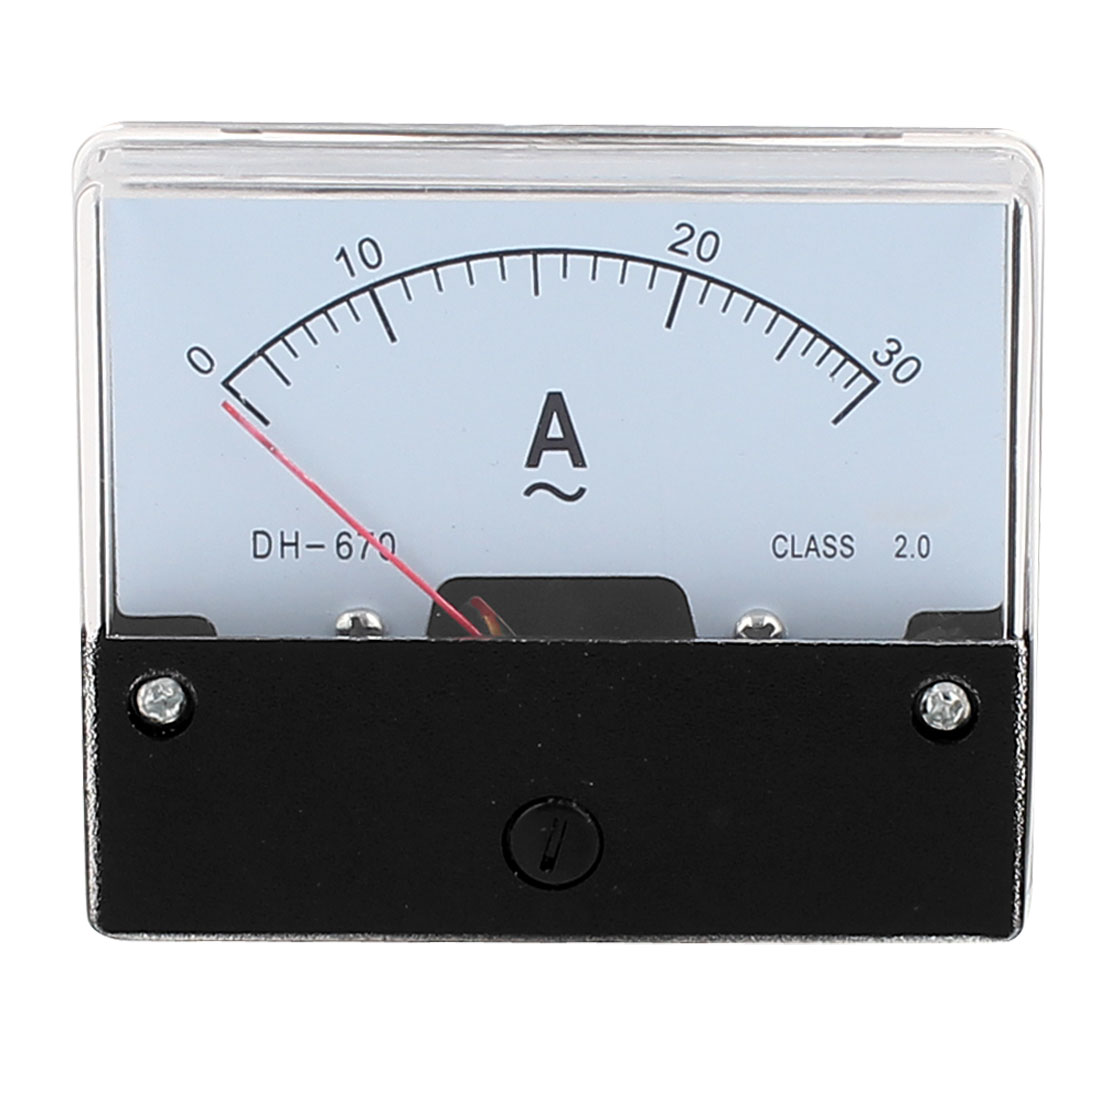 Square Panel 0-30A AC Current Class 2.0A Meter Analogue Amperemeter